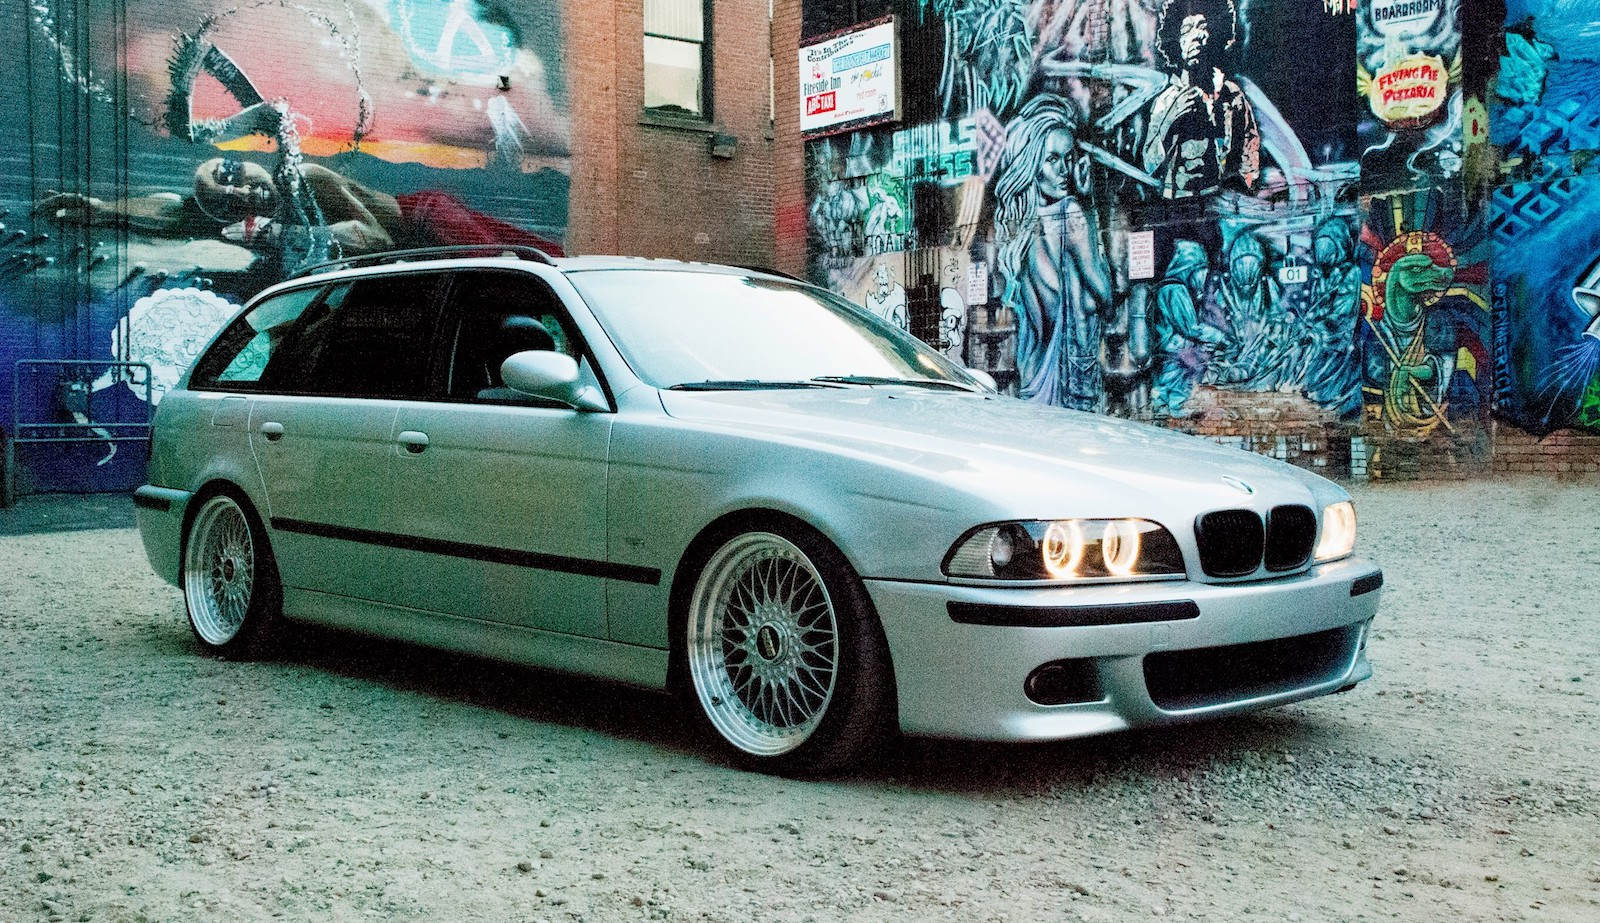 This Bmw 5 Series Wagon Is Powered By A 60 Liter Ls2 Engine The Drive Bring Trailer